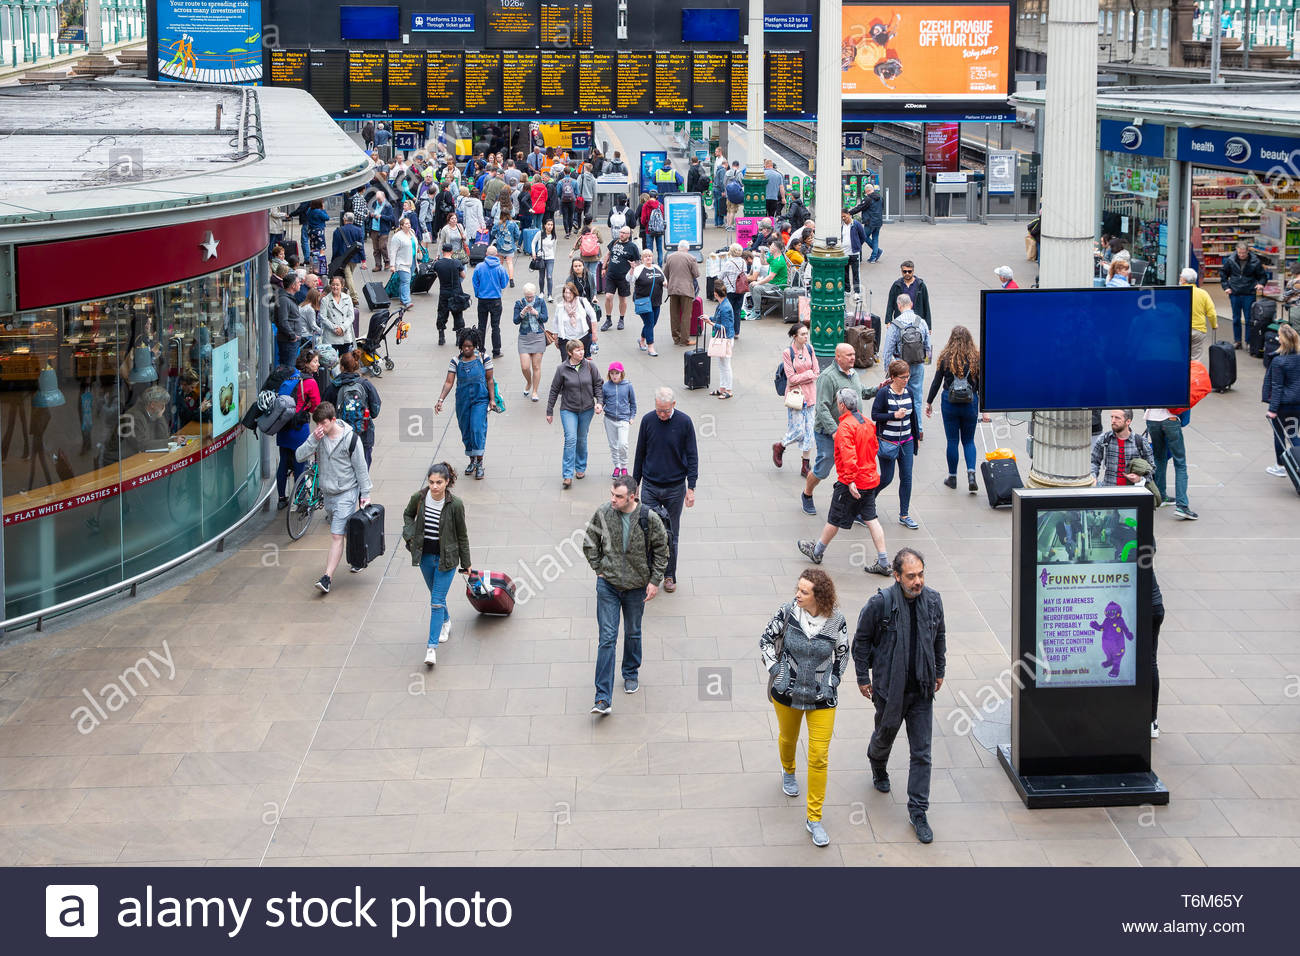 Concourse Waverley Station with travellers arriving and departing by train - Stock Image